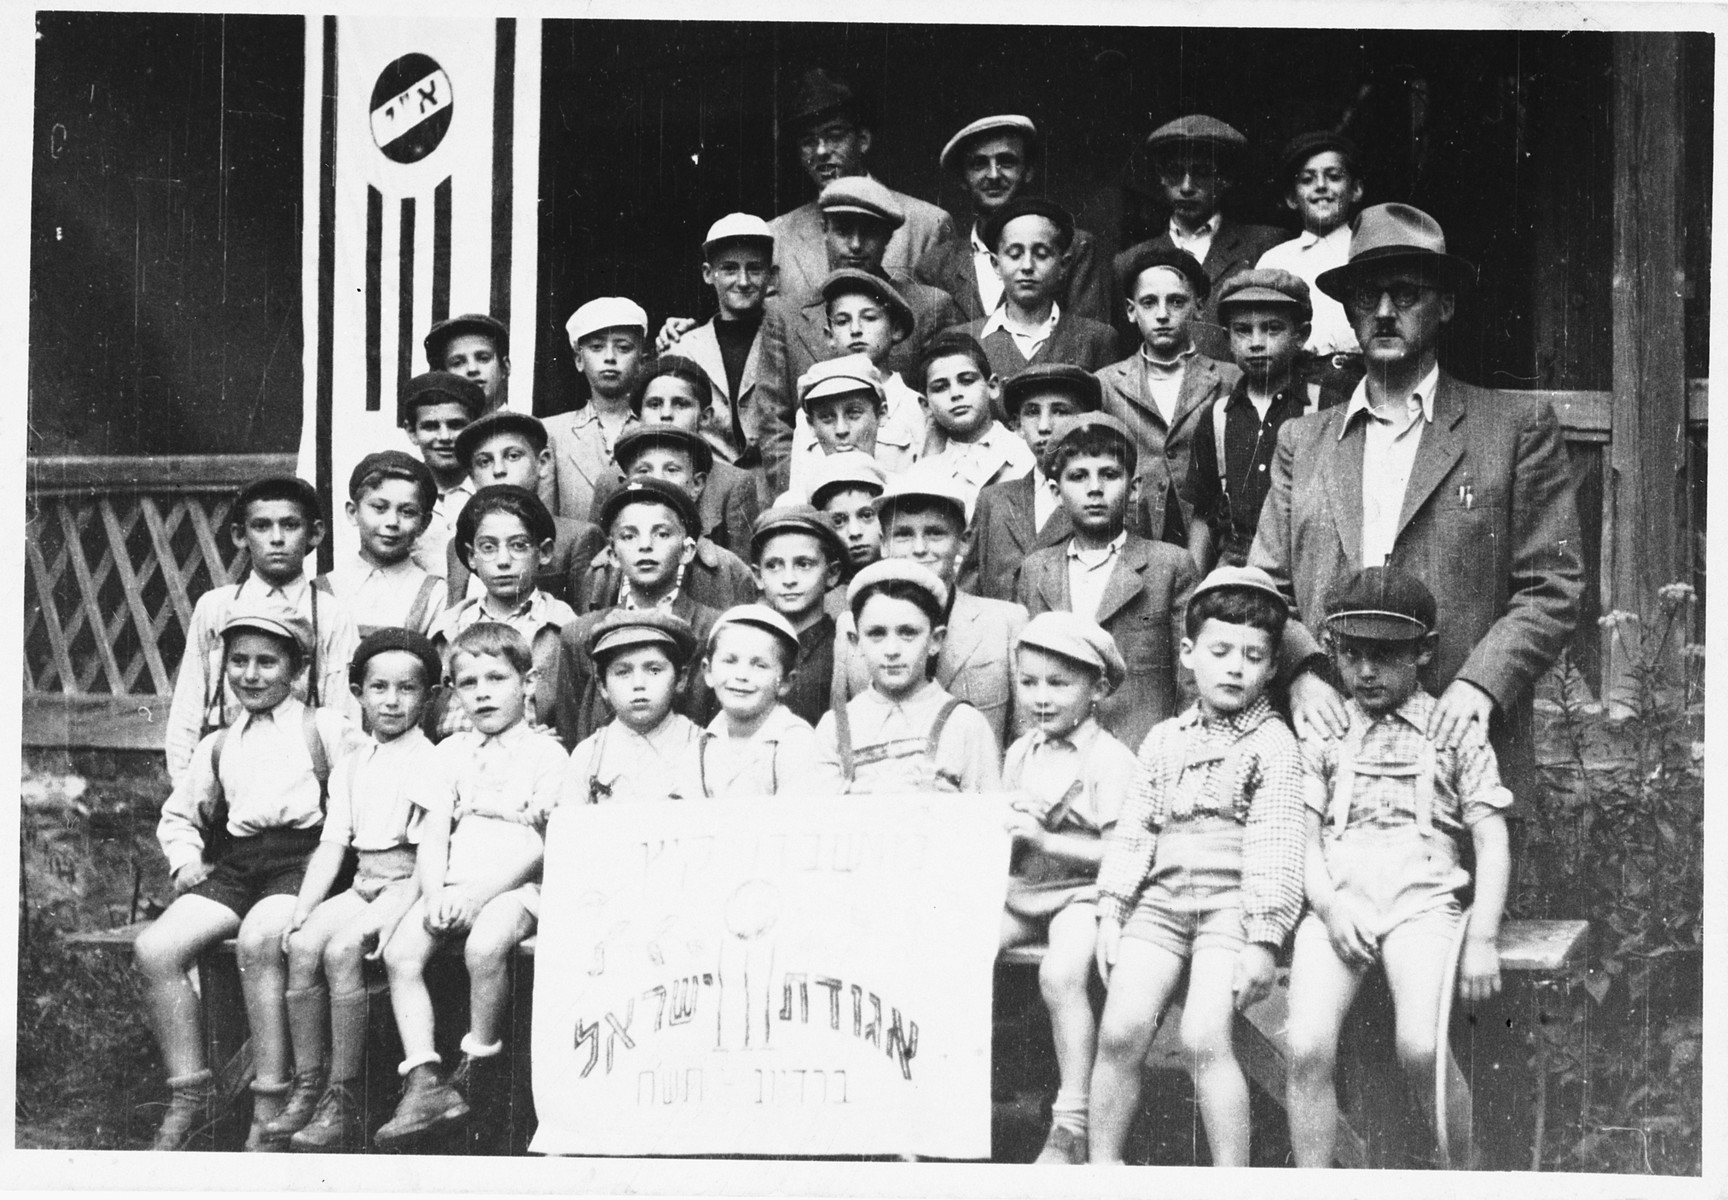 A group of orphans an Agudat Yisrael children's home in Bratislava  Among those pictured is Akiva Yosef Weiss, the teacher. Yehuda (Ernest) Schlessinger  first on the left, sixth row from the bottom. Itschak (Tibor) Schlessinger is sixth from the left, second row from the bottom. Both boys are nephews of the teacher.    Moshe Tomas is seated in the first row, fifth from the left.